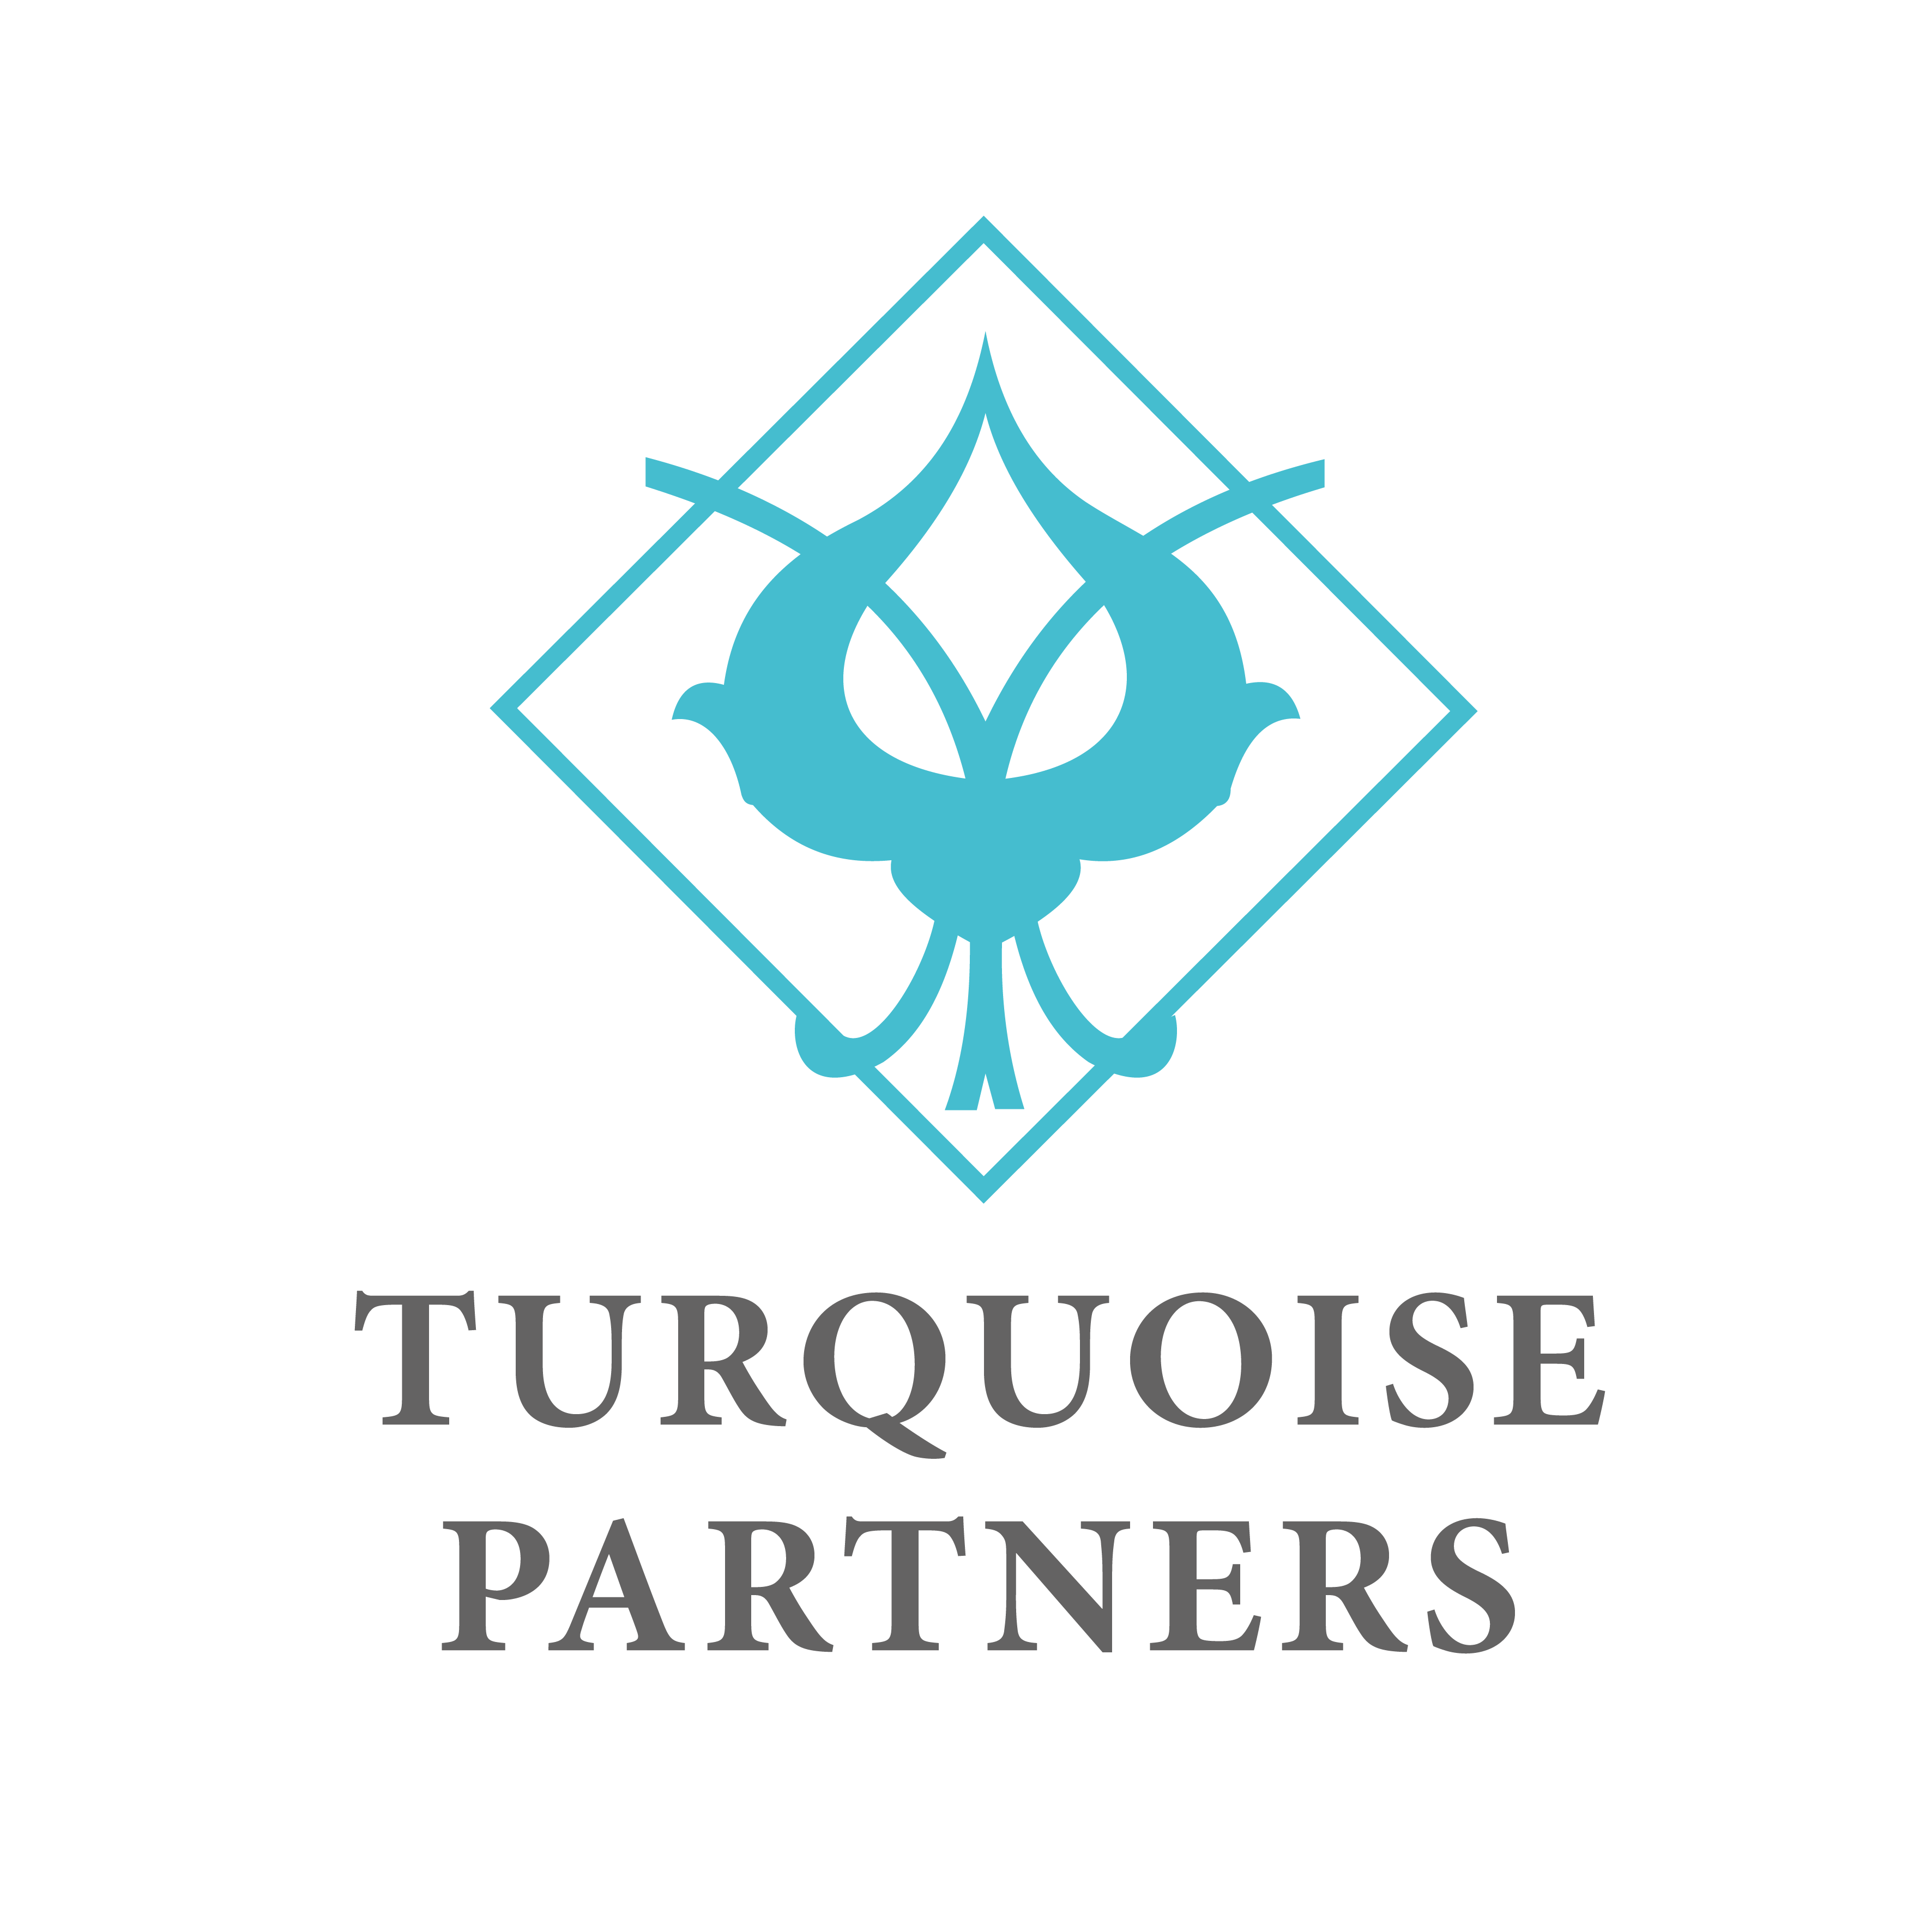 TURQUOISE PARTNERS